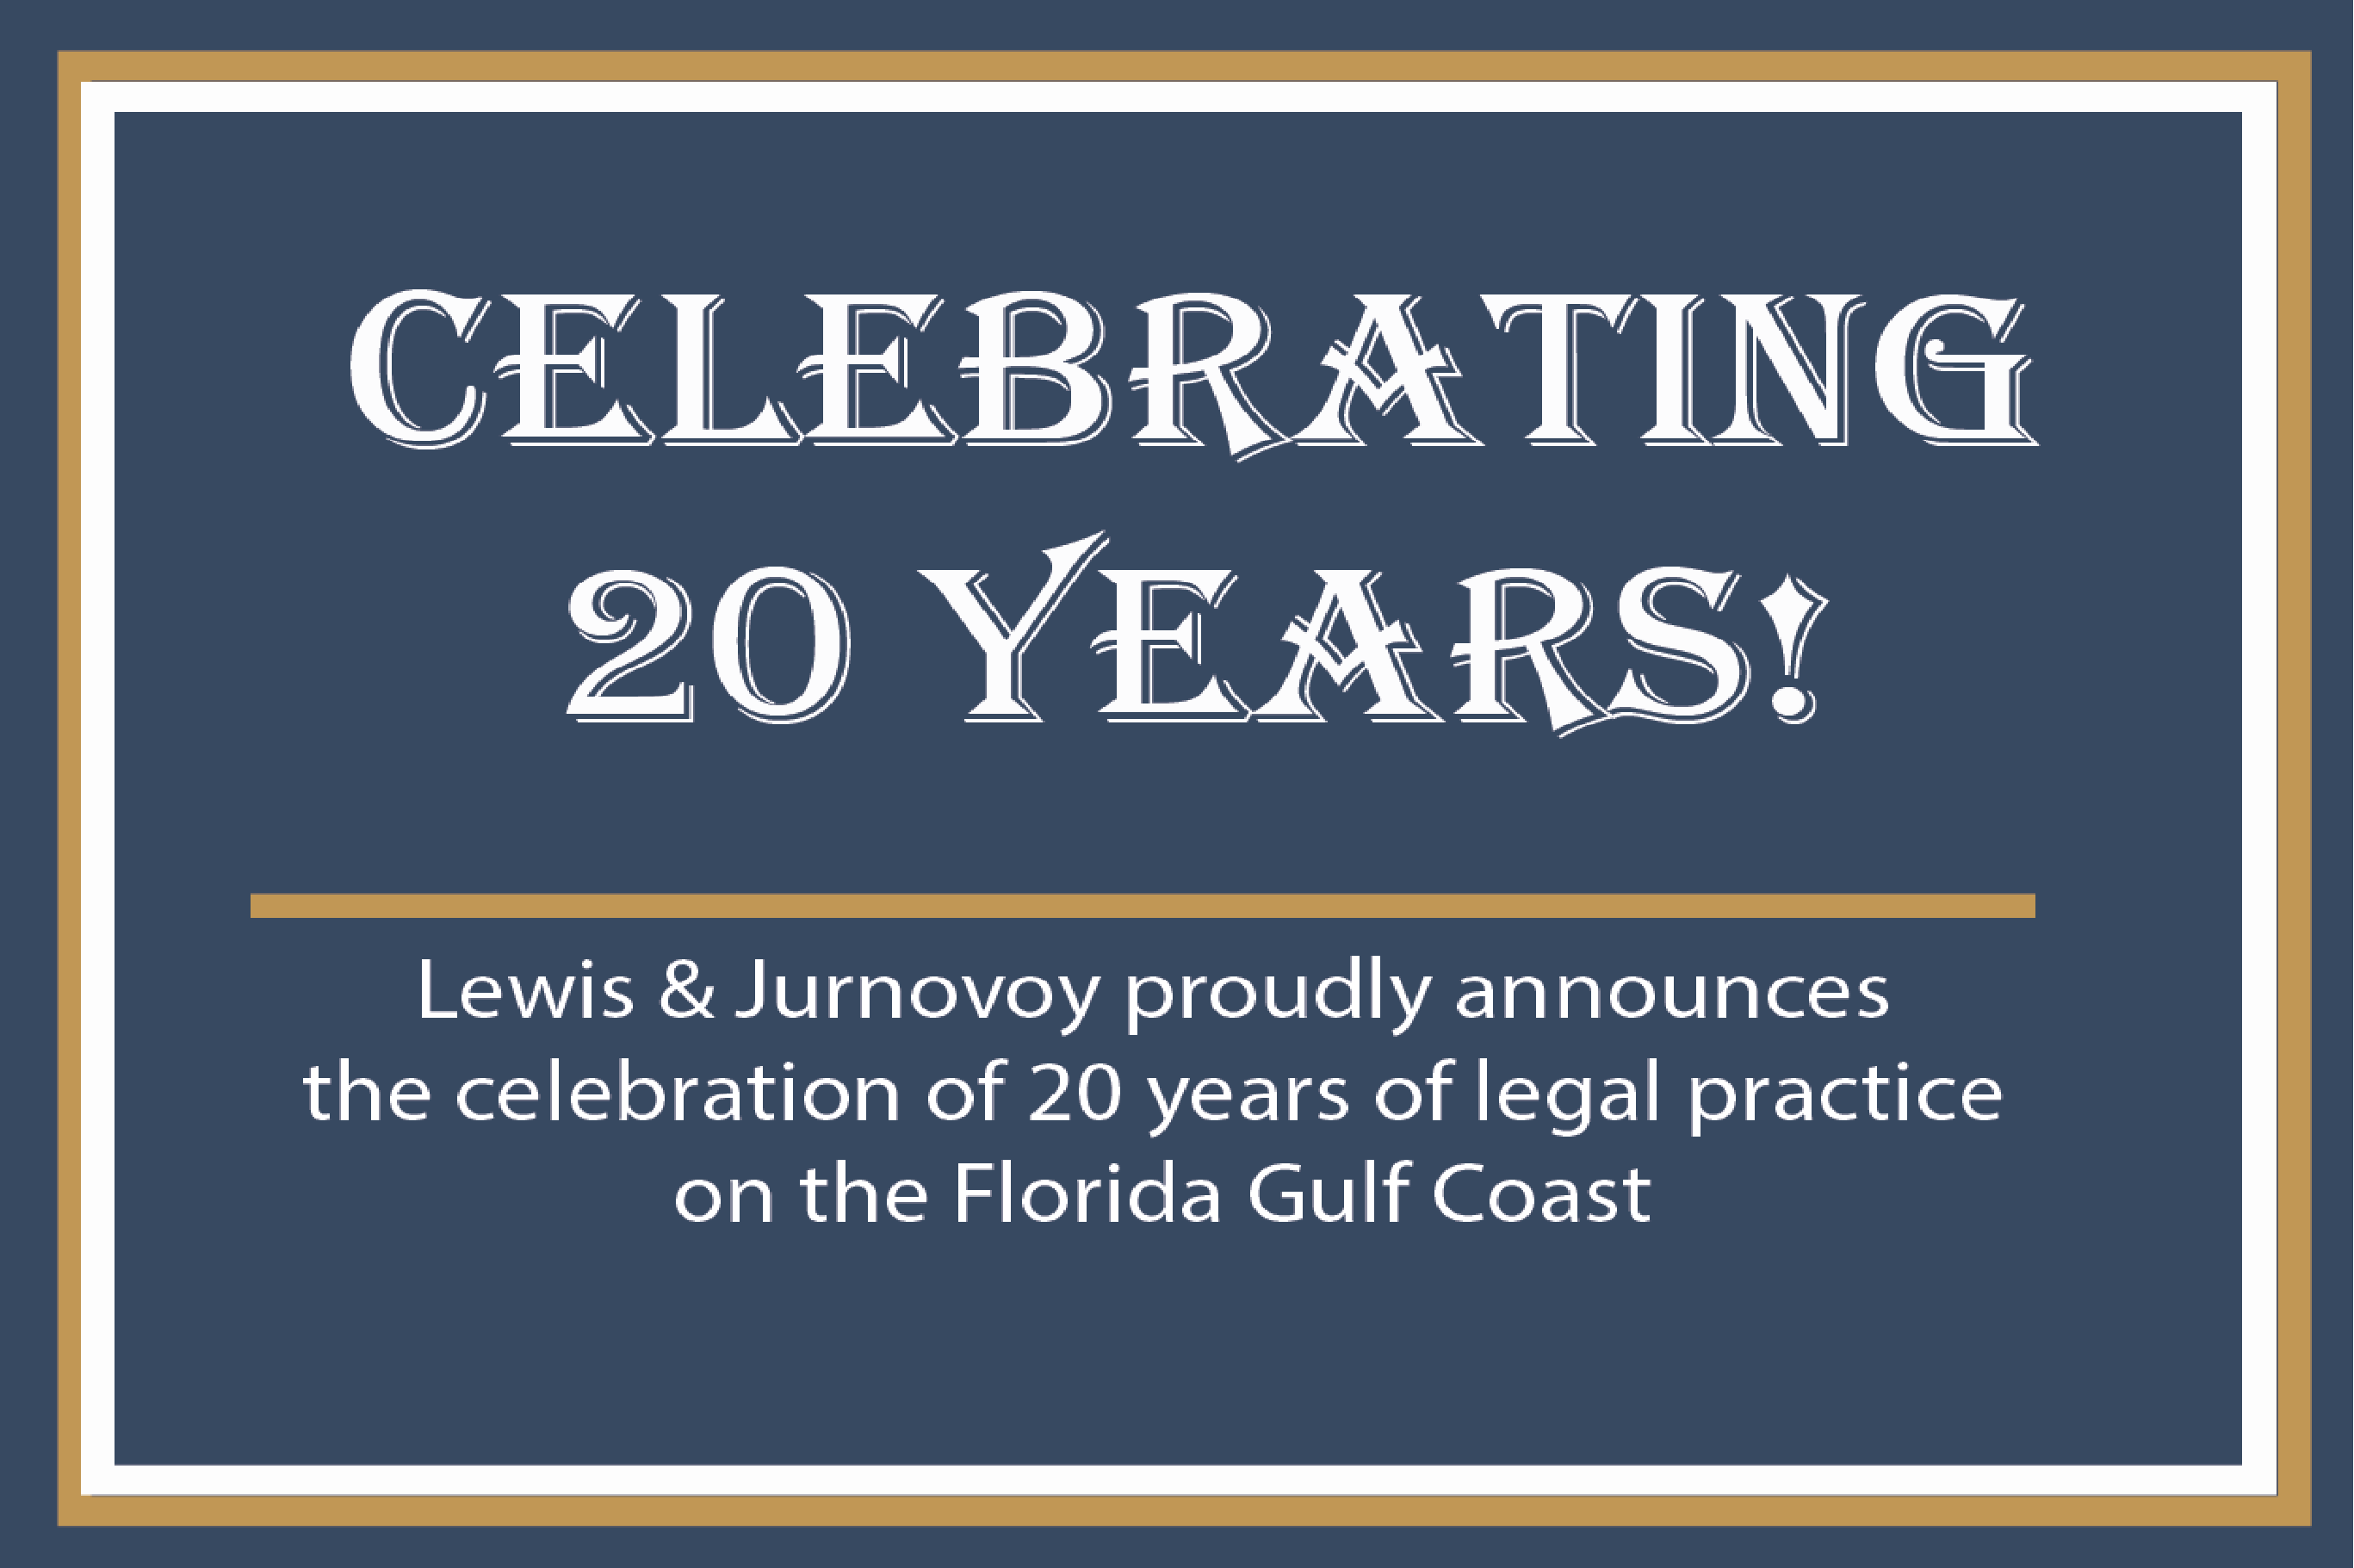 20 Year Anniversary Florida Gulf Coast Legal Practice